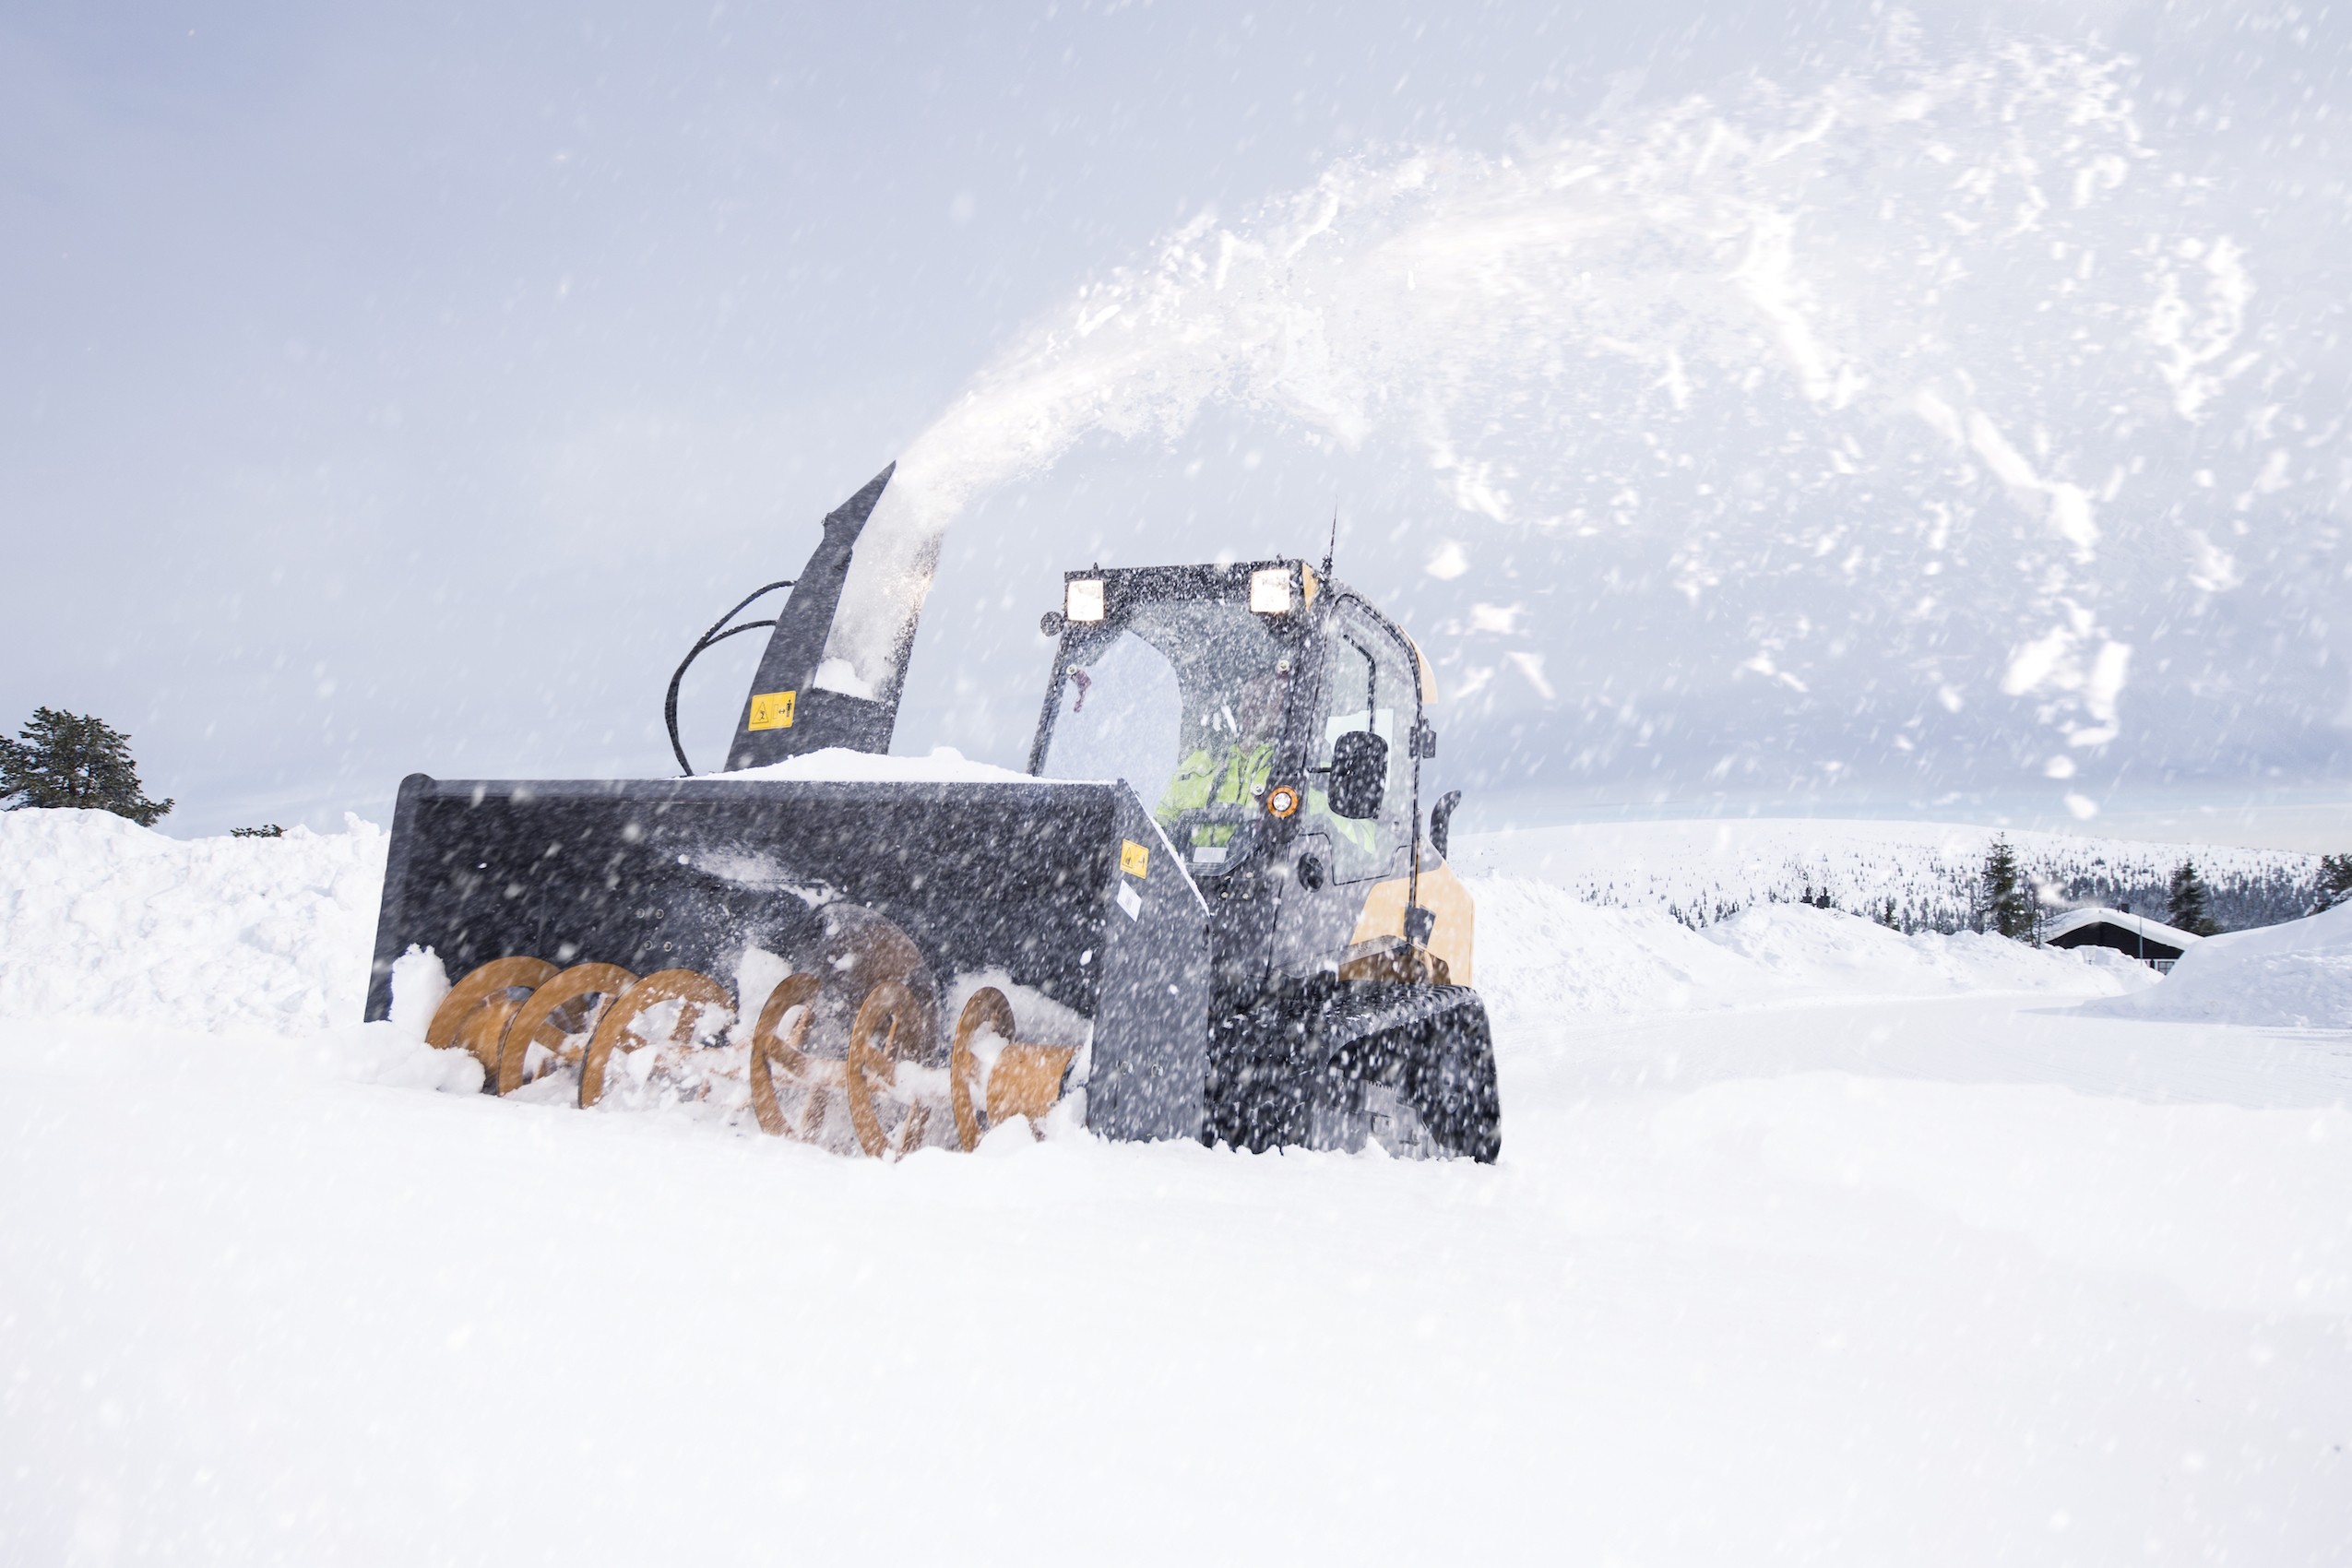 14 snow attachments for skid steers, pickups, telehandlers